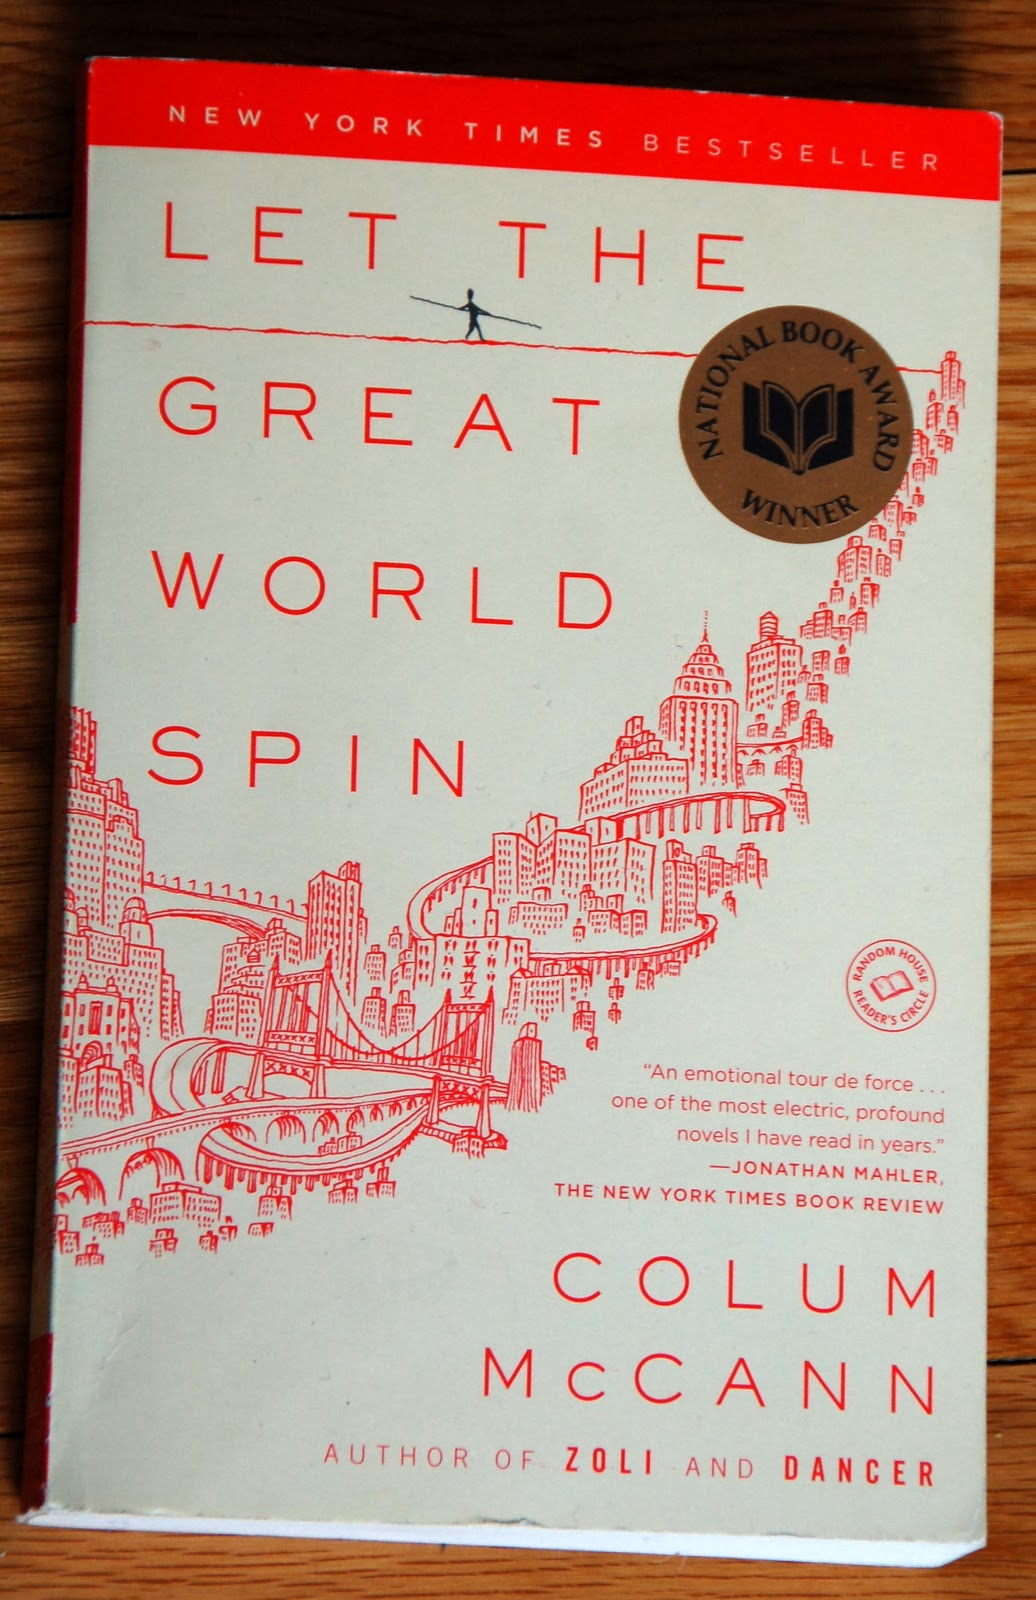 an analysis of the let the great world spin Colum mccann has worked some exquisite magic with let the great world spin, conjuring a novel of electromagnetic force that defies gravity.